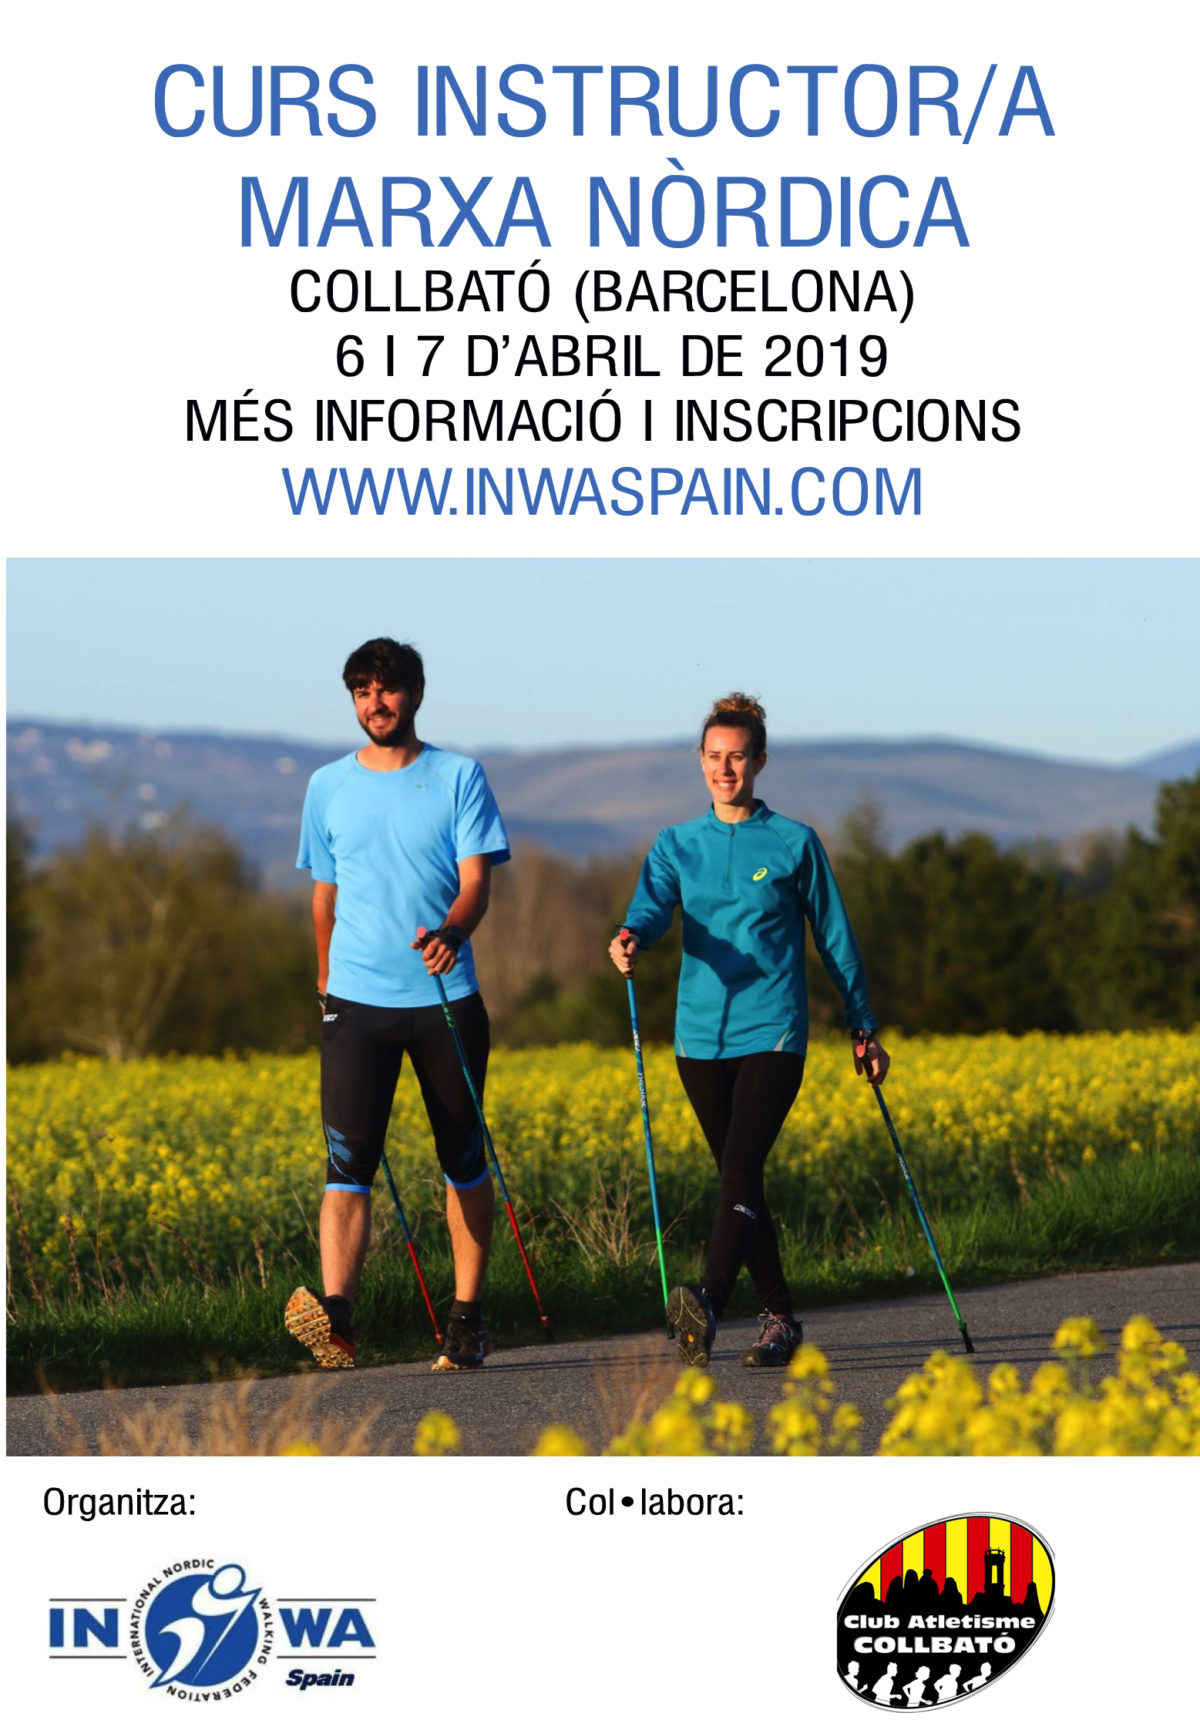 CURS D'INSTRUCTOR/A INWA A COLLBATÓ (BARCELONA) – ABRIL 2019